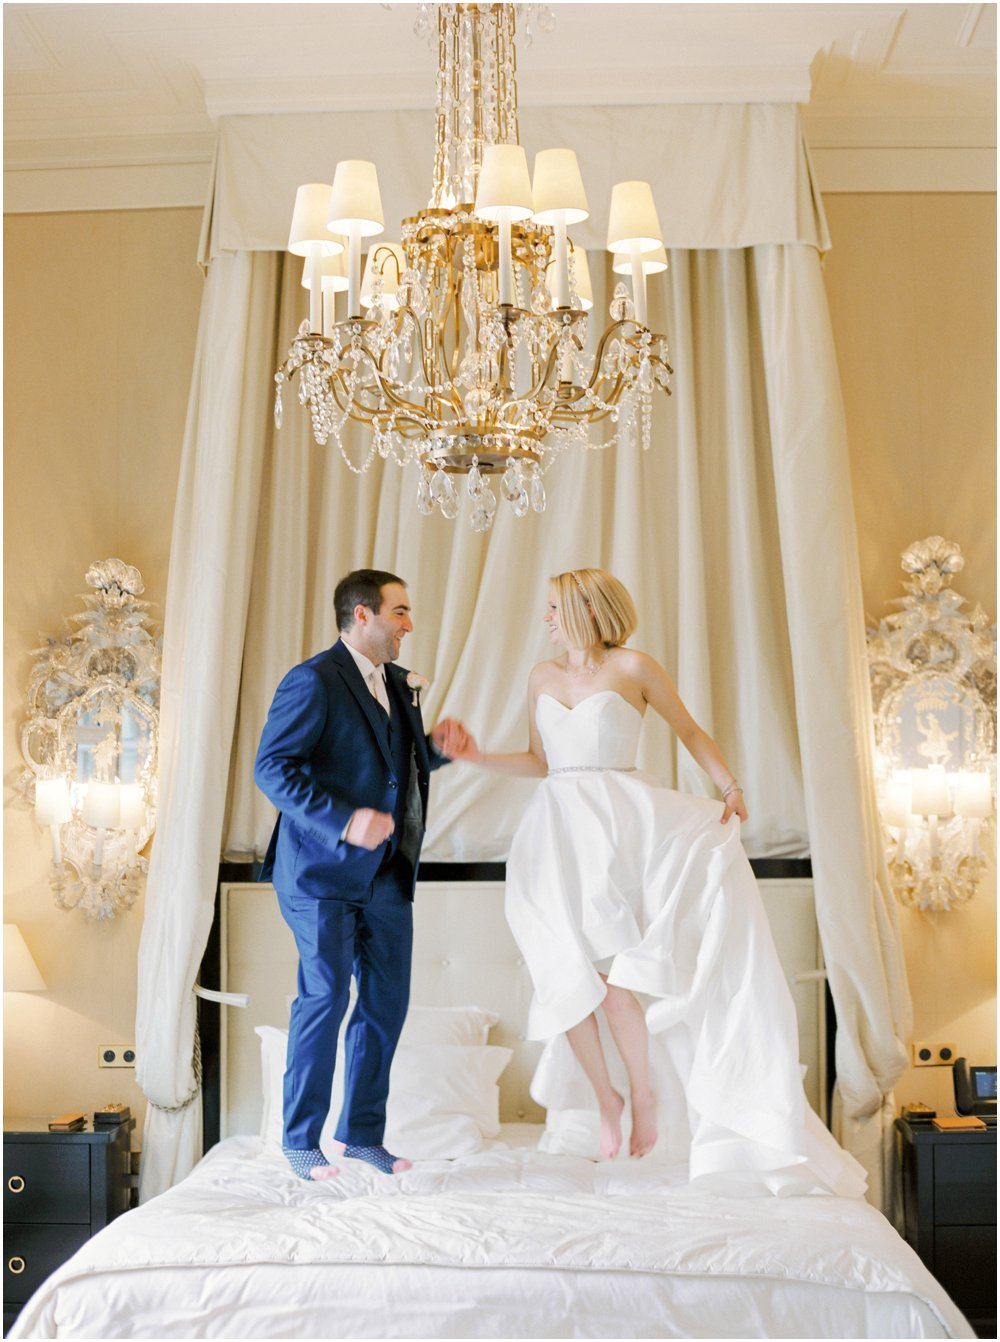 Ritz_Paris_Wedding_RealCouple22.jpg